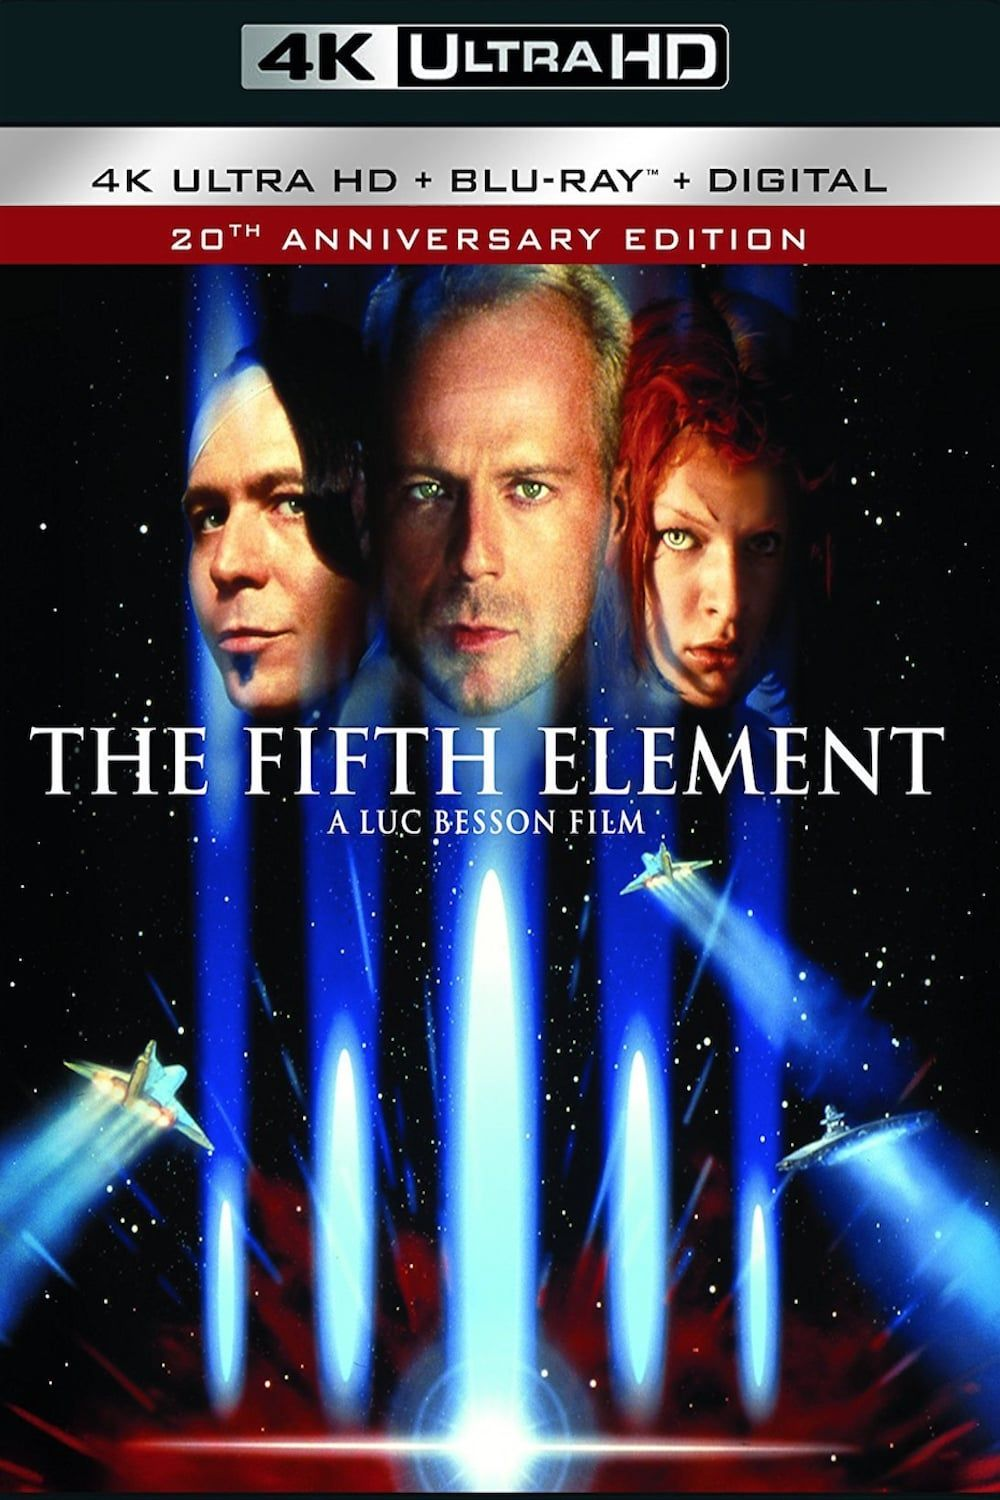 The Fifth Element Teljes Film Hungary Magyarul Thefifthelement Teljes Magyar Film Videa 2019 Mafab Mozi Indavideo Fifth Element Luc Besson Blu Ray